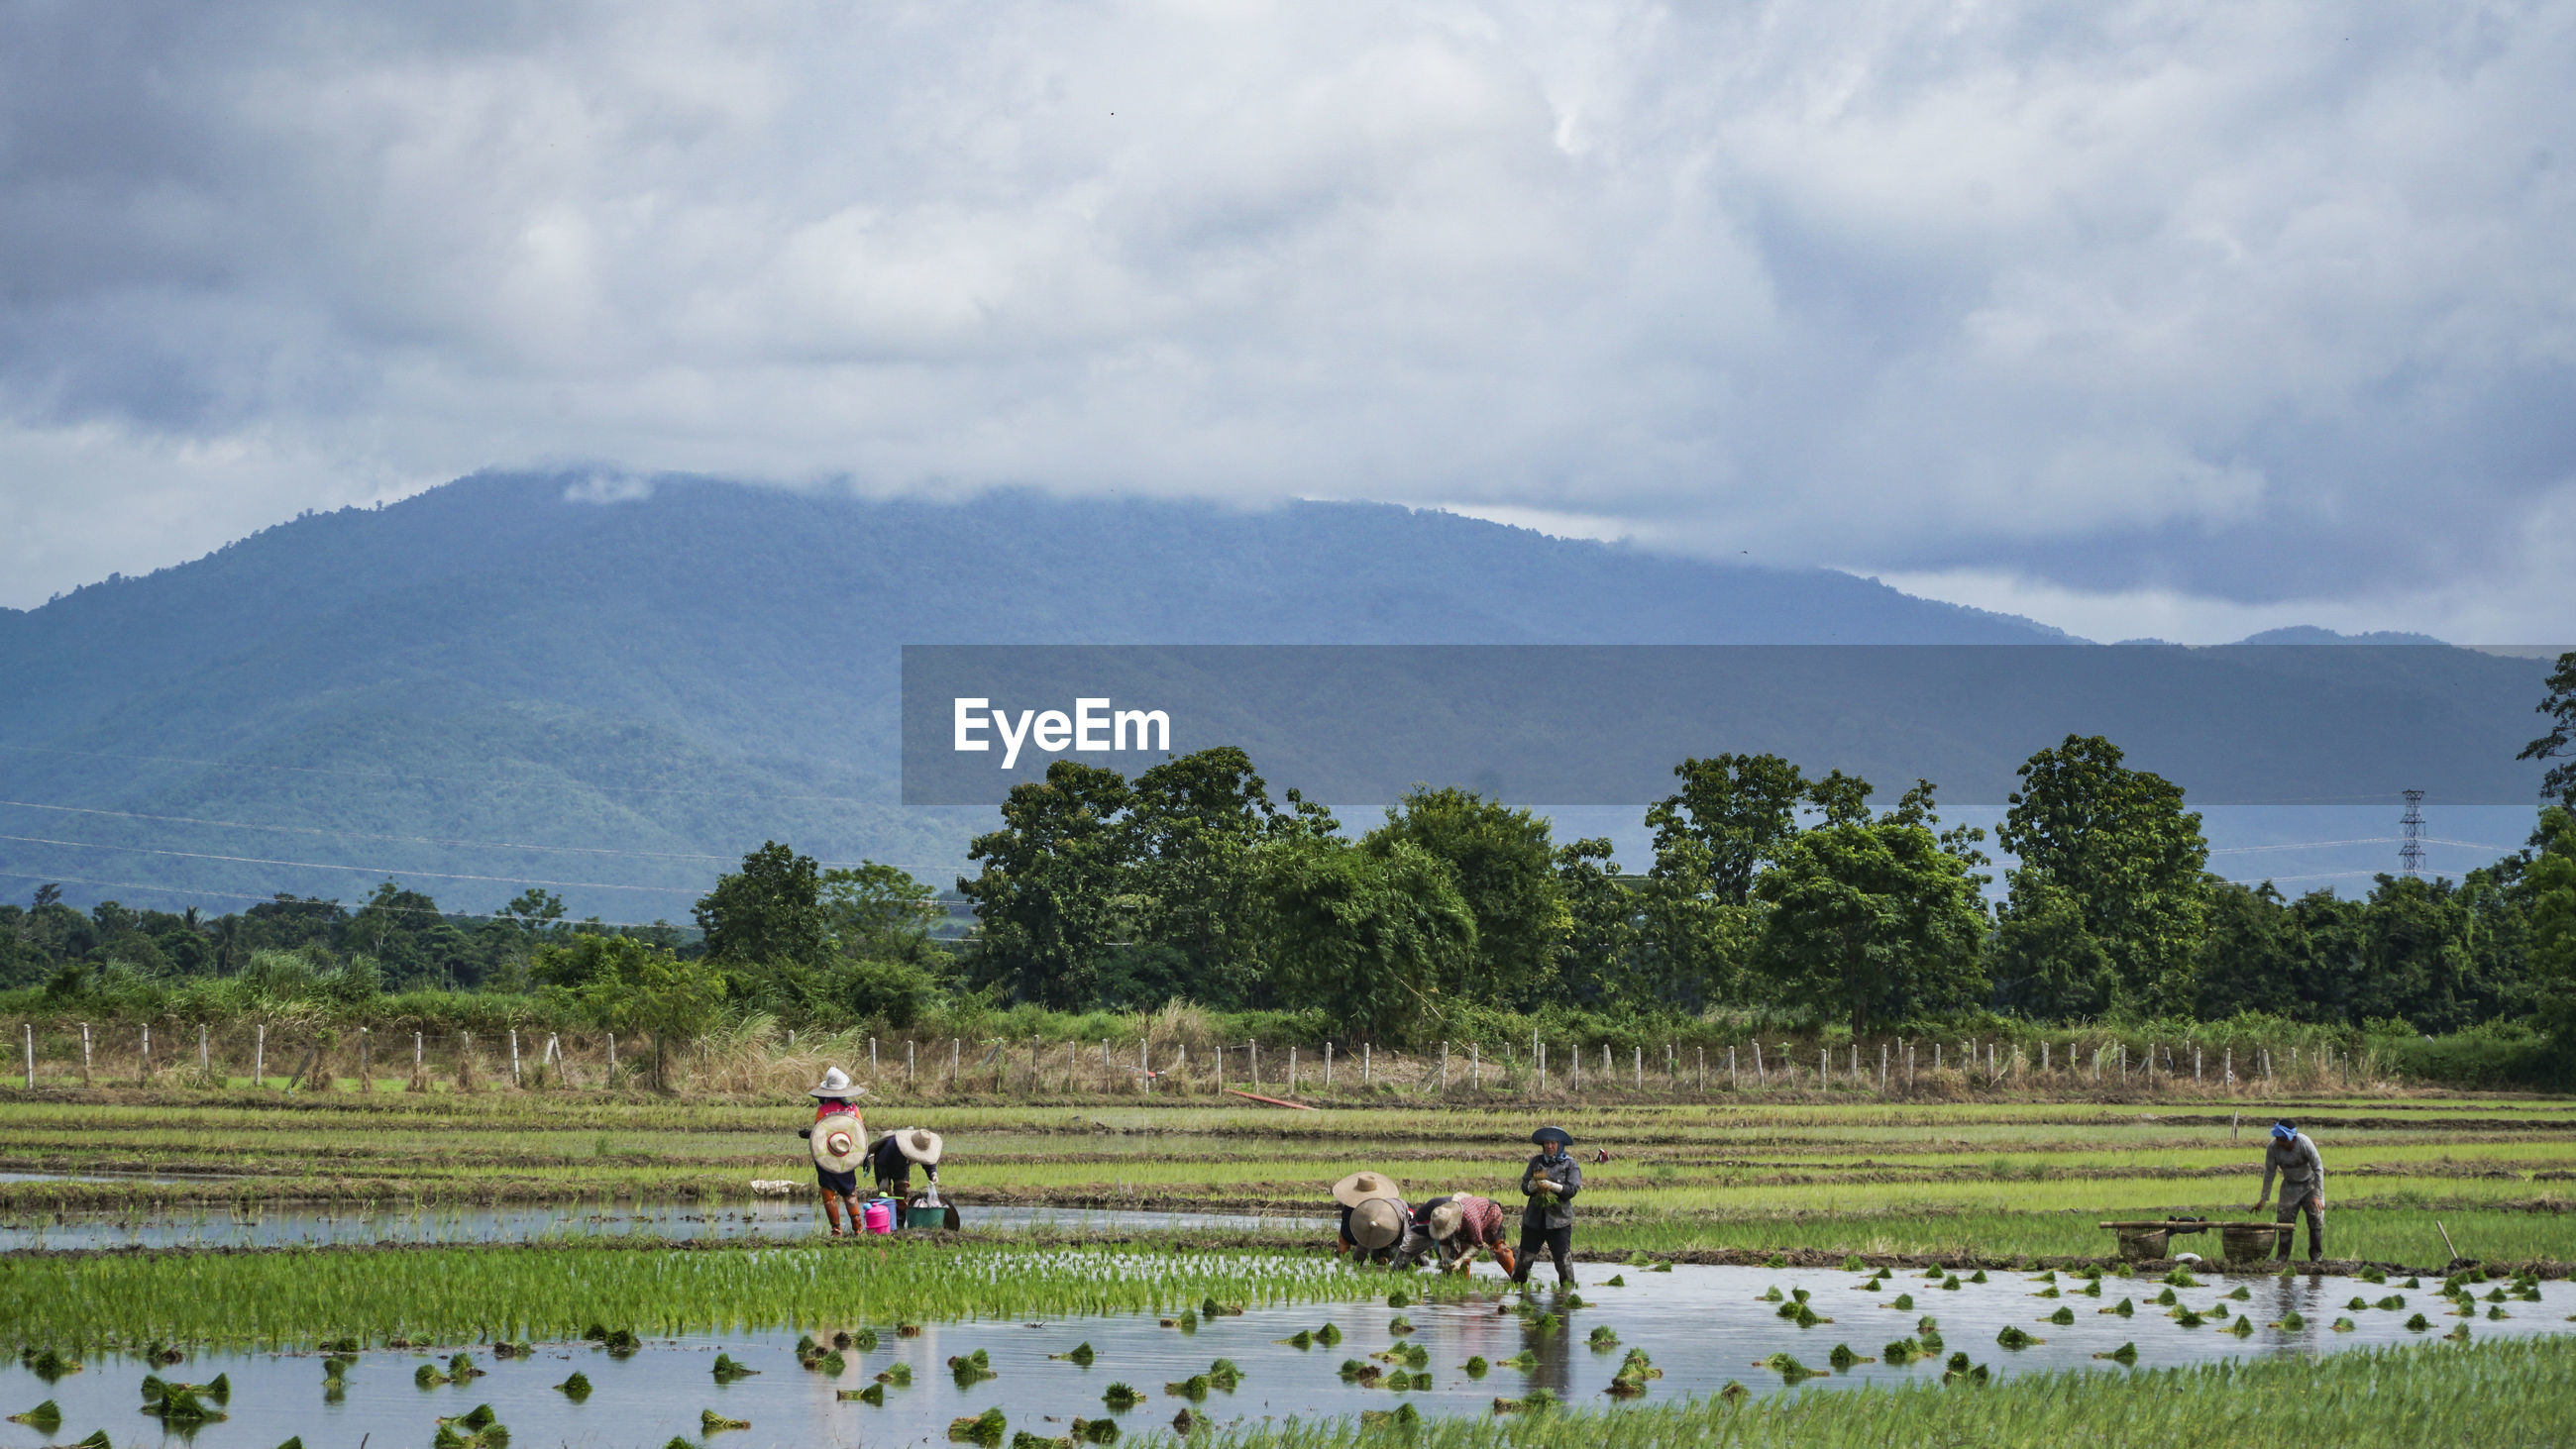 Farmers working of agricultural field against sky